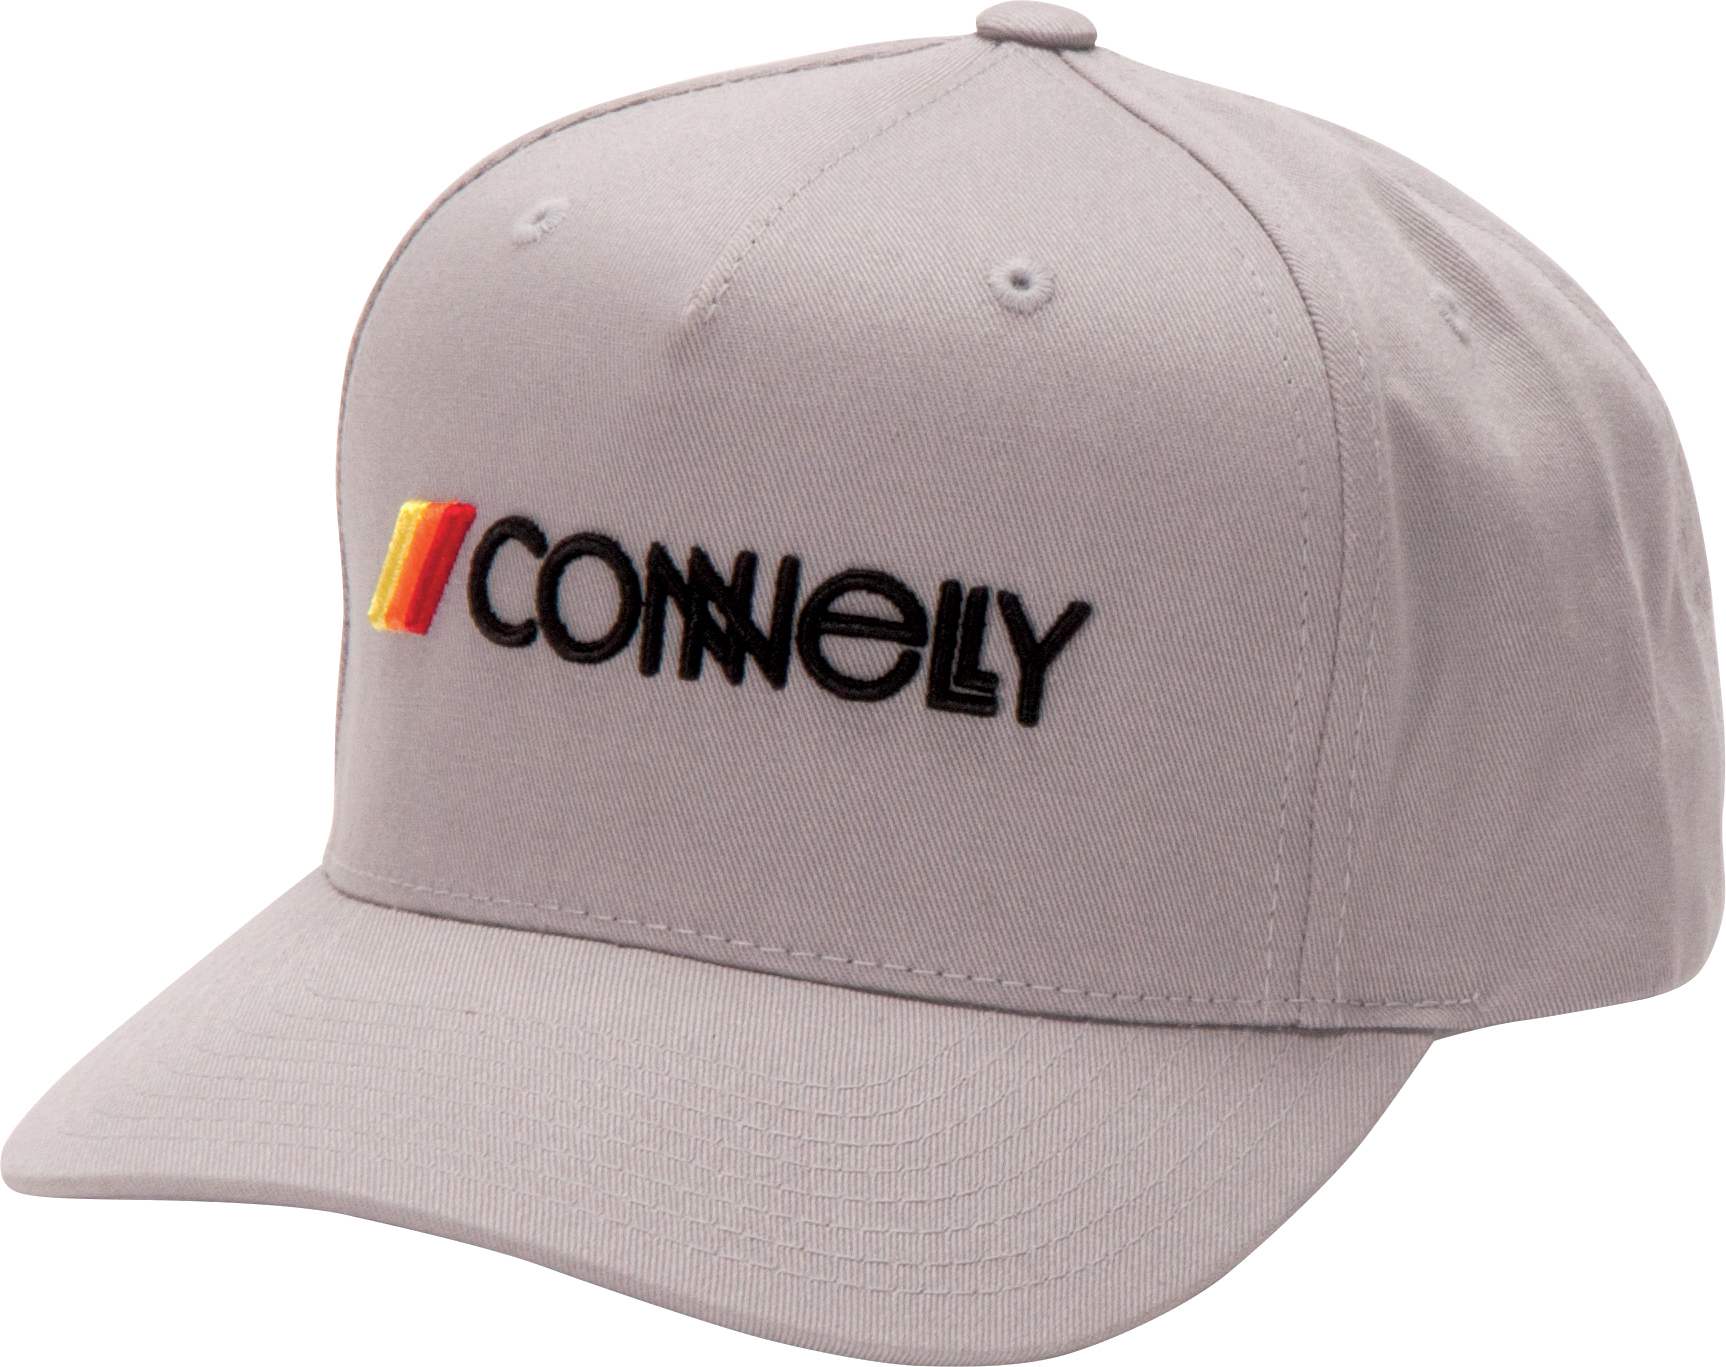 CORPORATE HAT - OSFA CONNELLY 2018